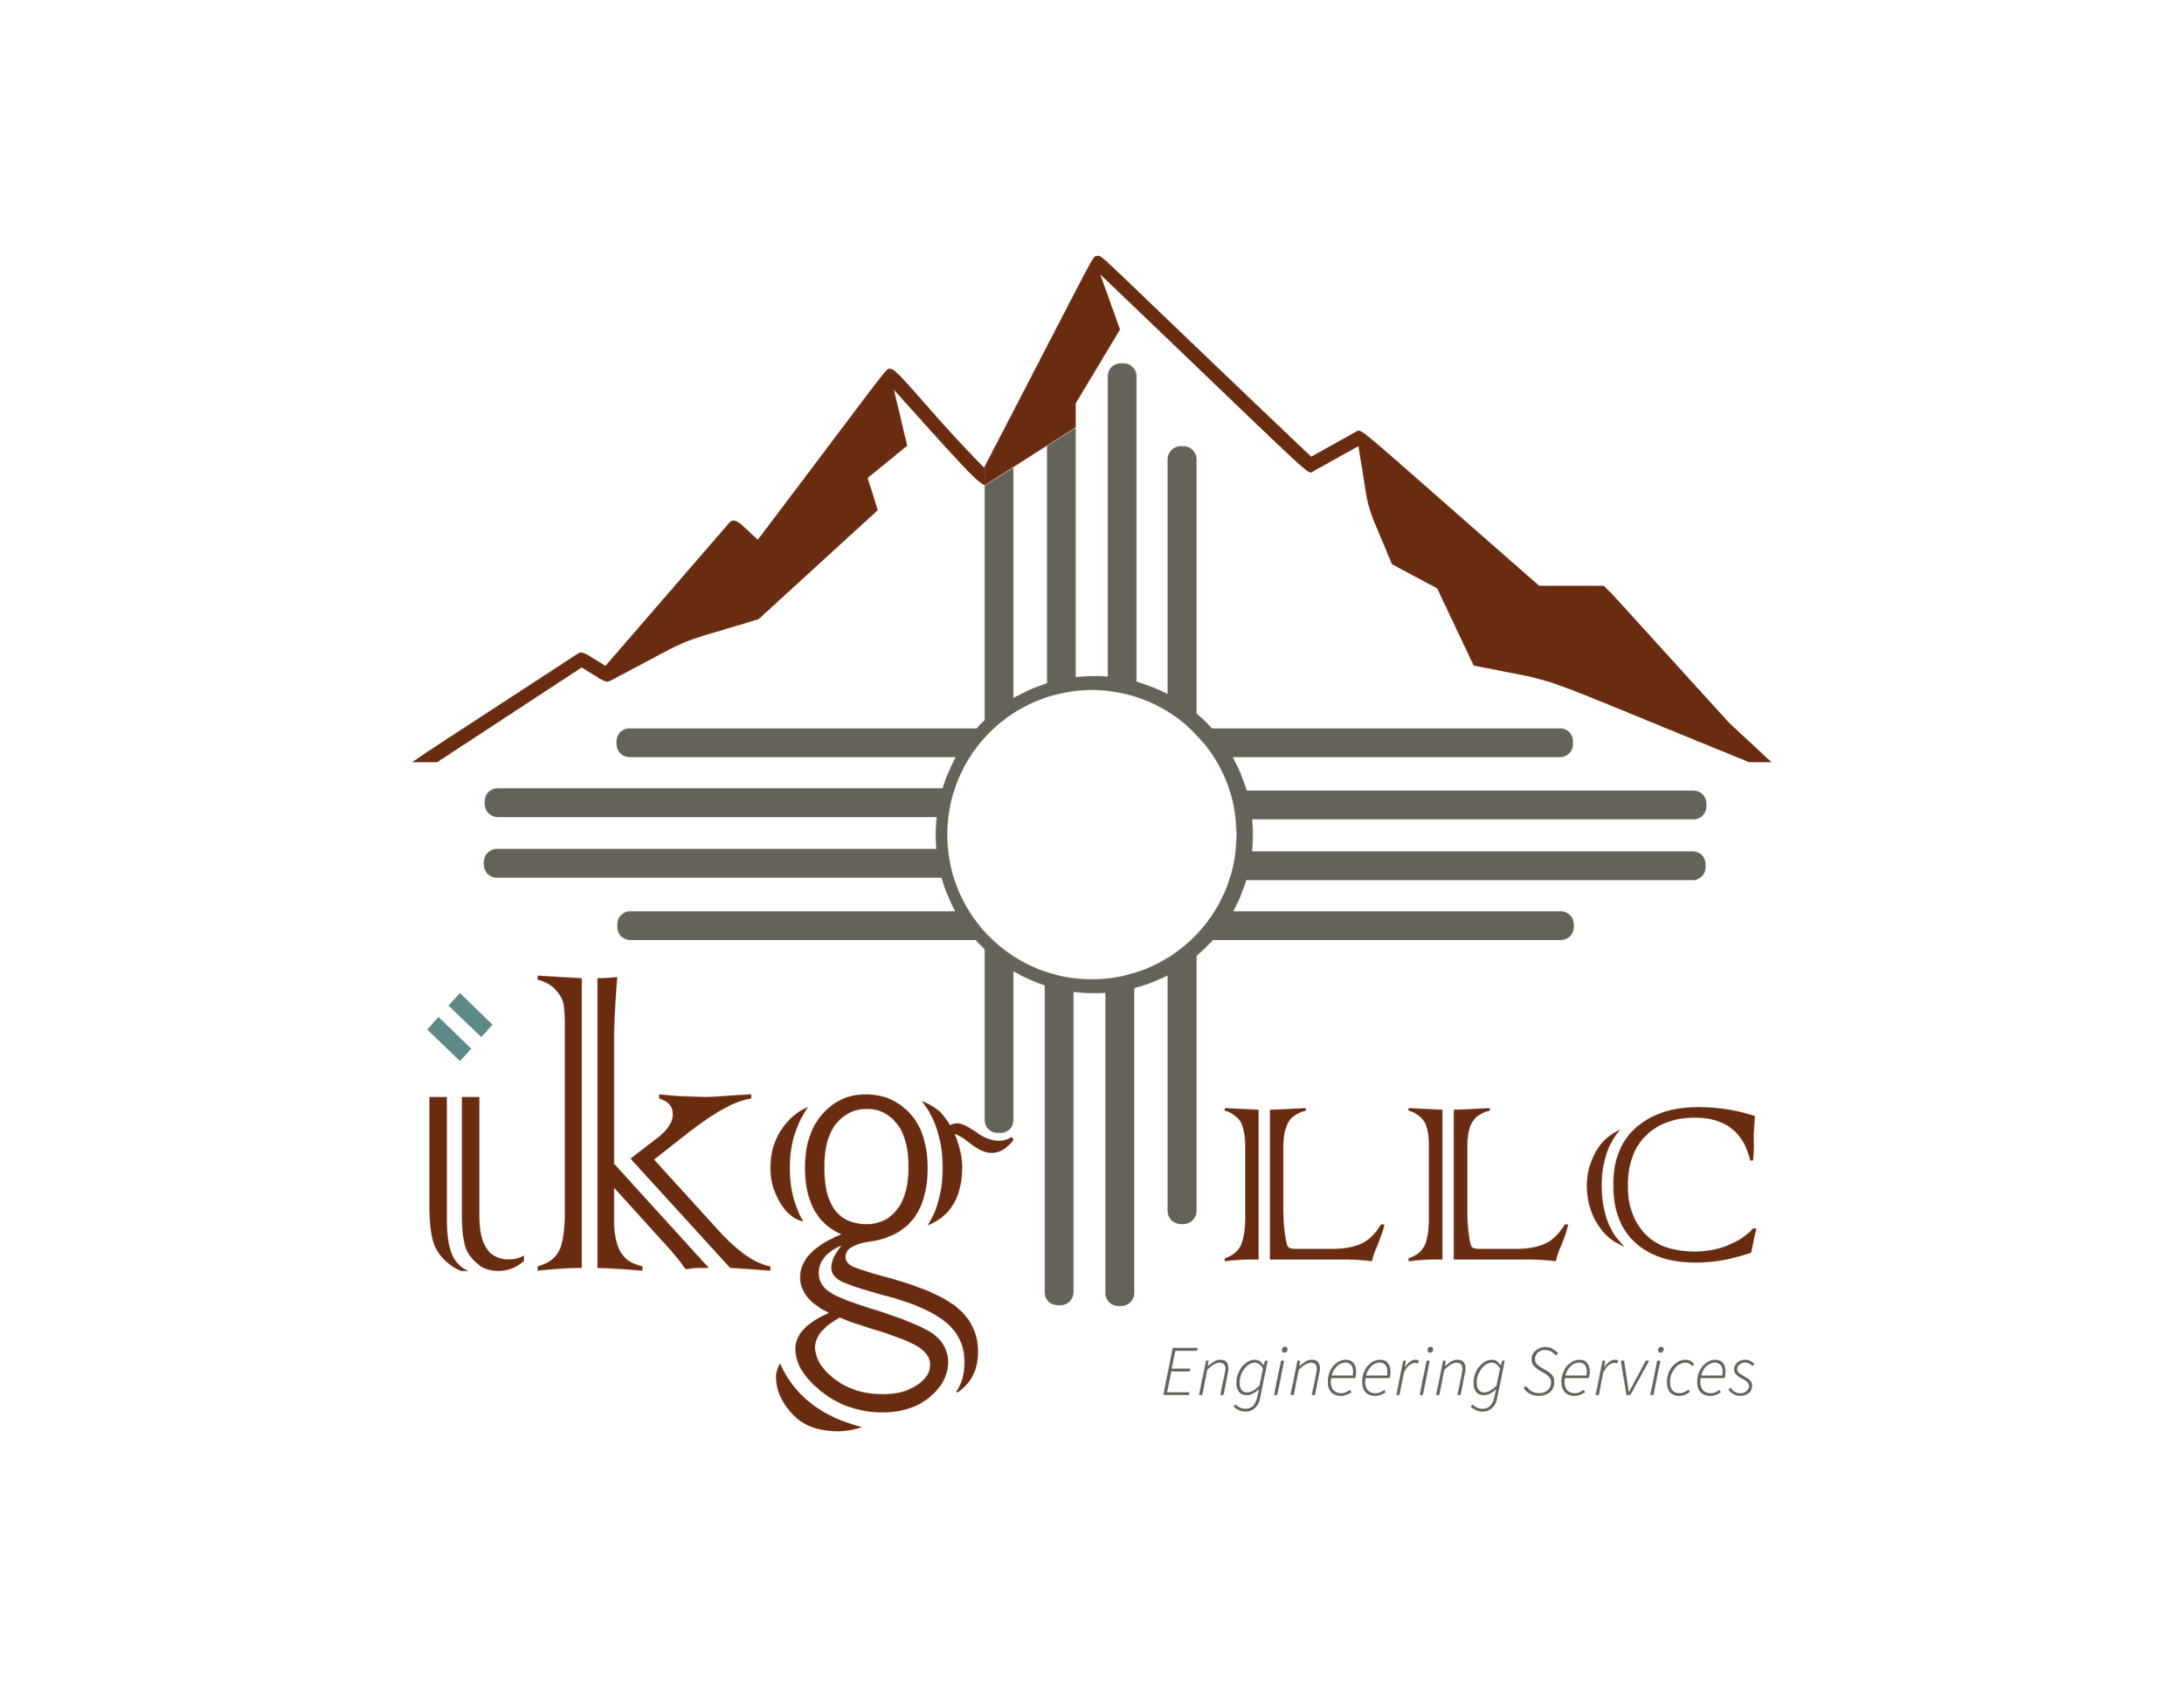 Identity Study - IKG LLC: Geoenvironmental Engineering Services